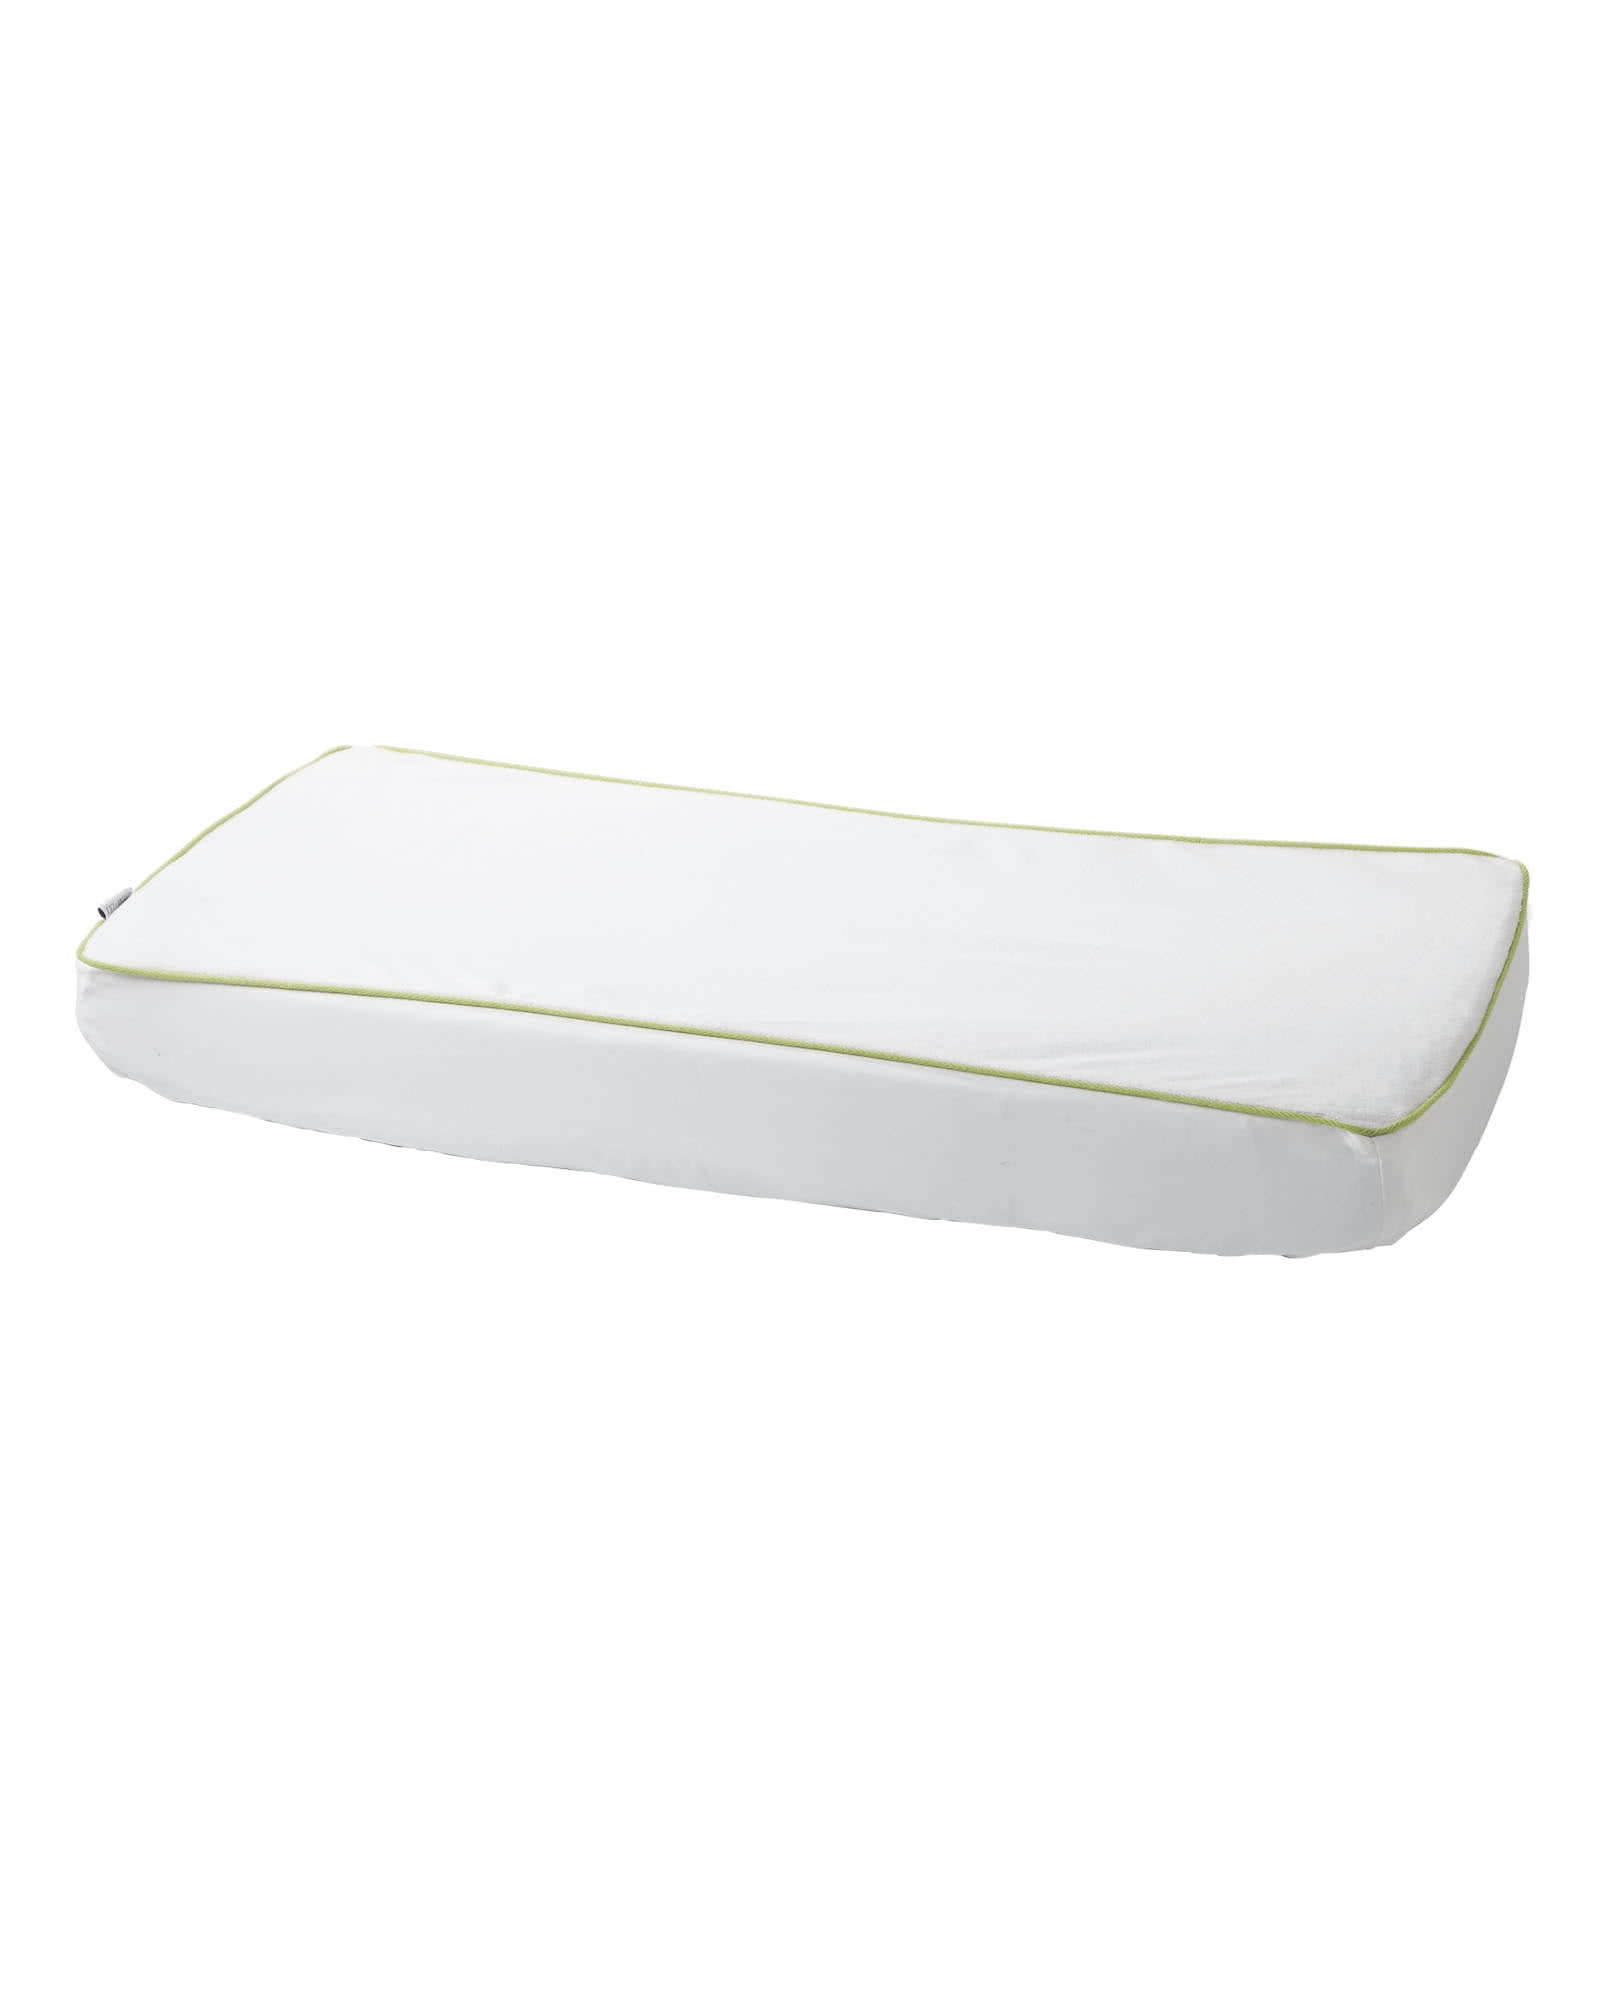 Nursery Basics Diaper Changing Cover - Sprout